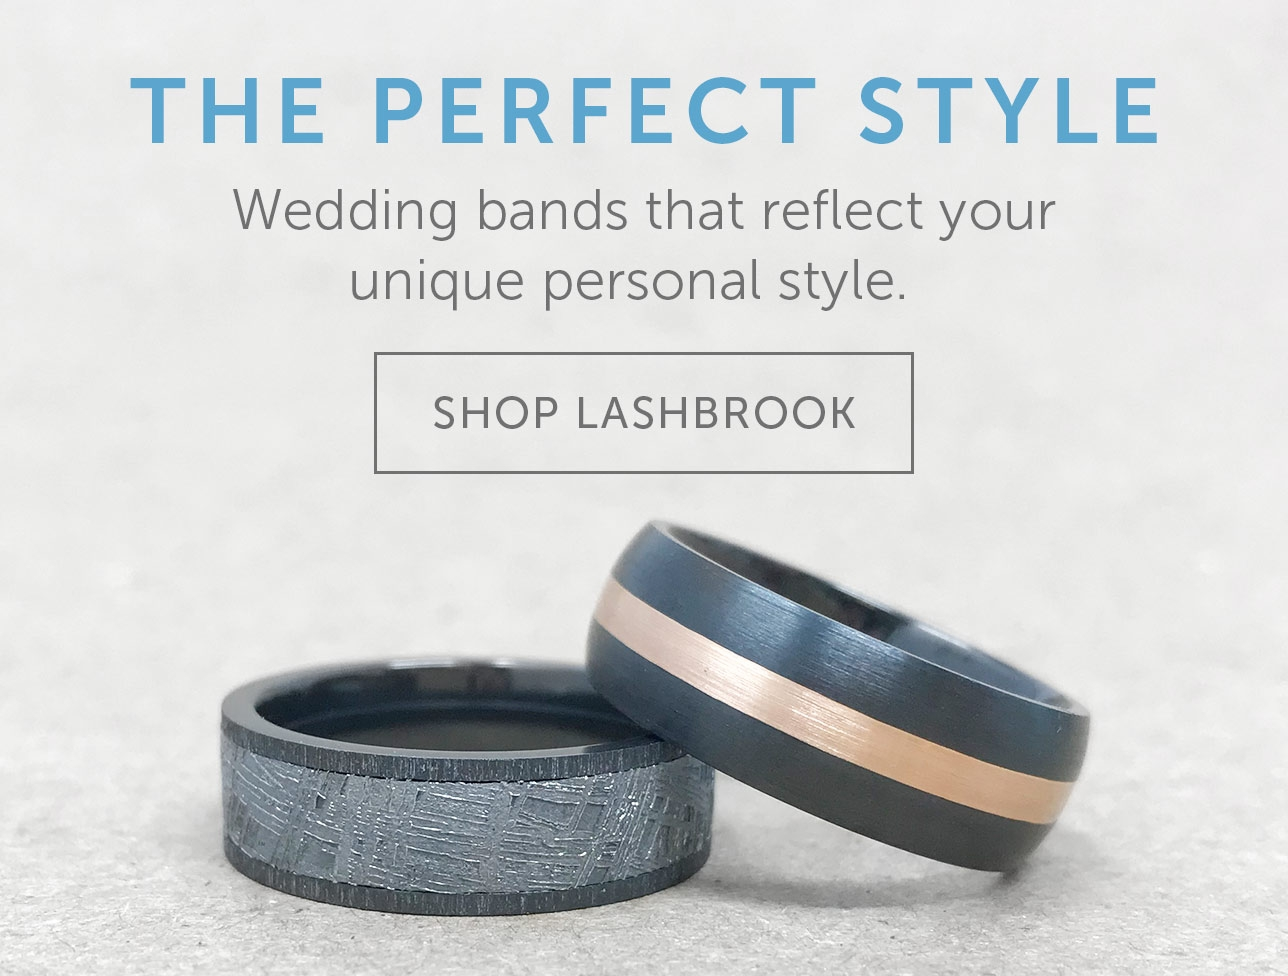 The Perfect Style. Wedding bands that reflect your unique personal style. Shop Lashbrook.